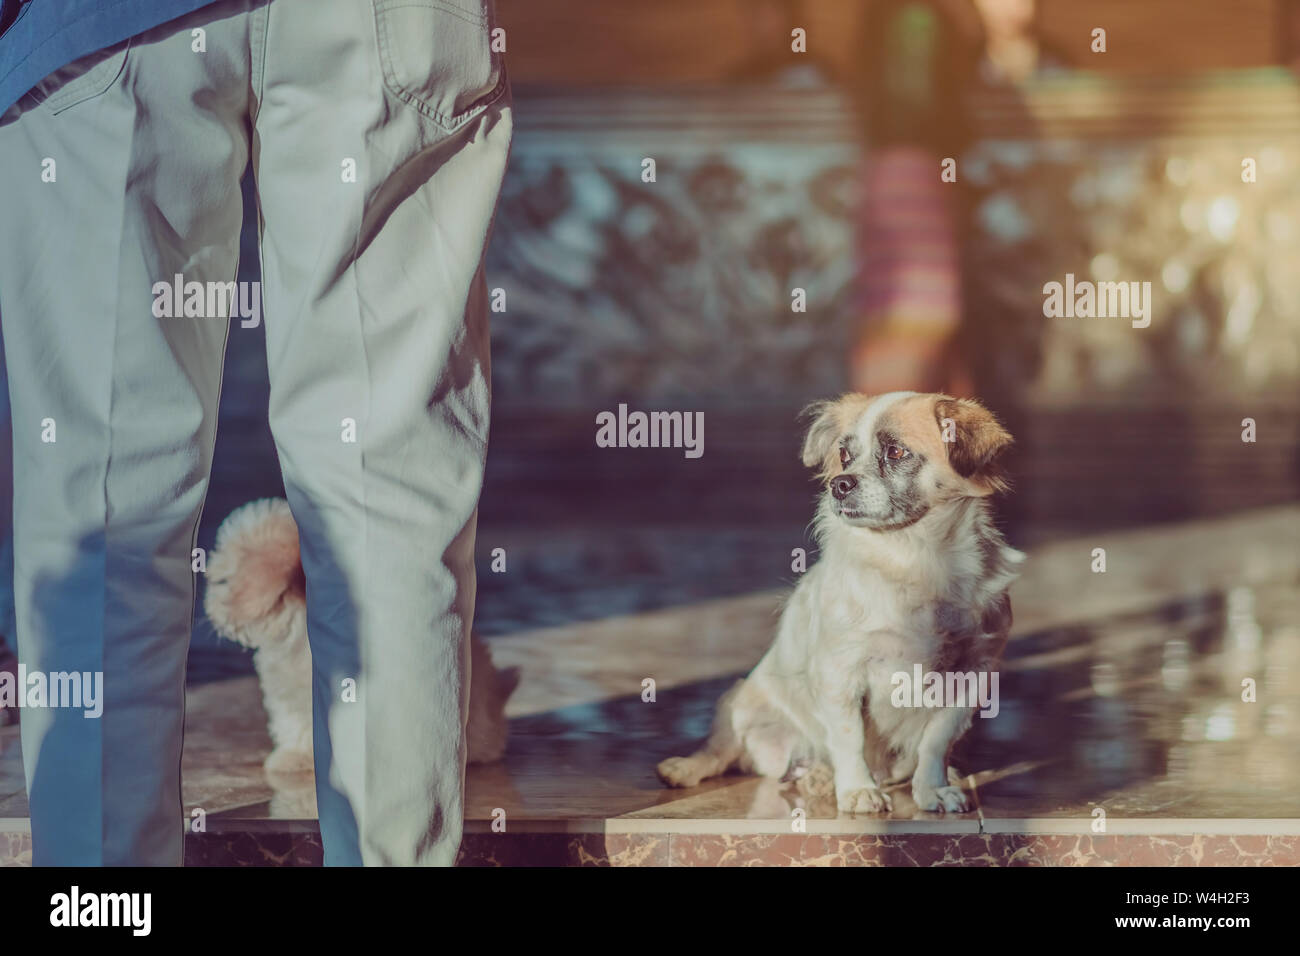 Little cute dogs wait to welcome guests in front of the hotel in the morning. Stock Photo